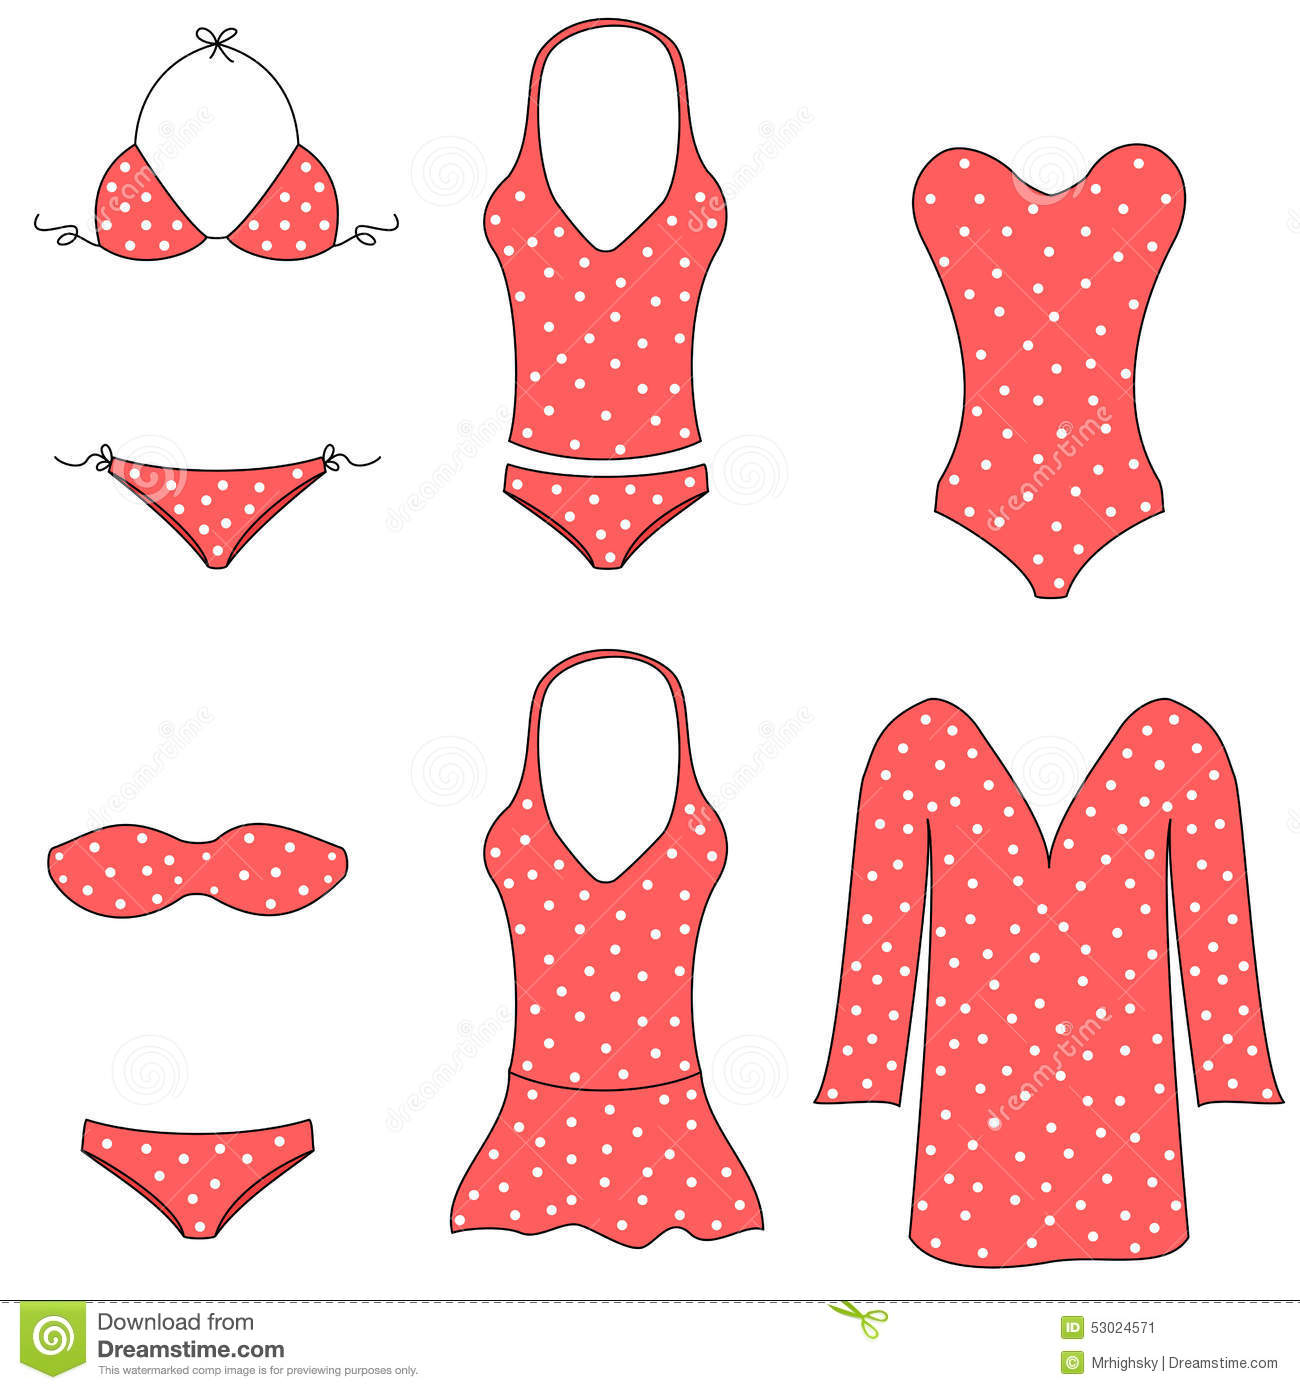 Types of women swimwear stock vector. Image of shapes ...